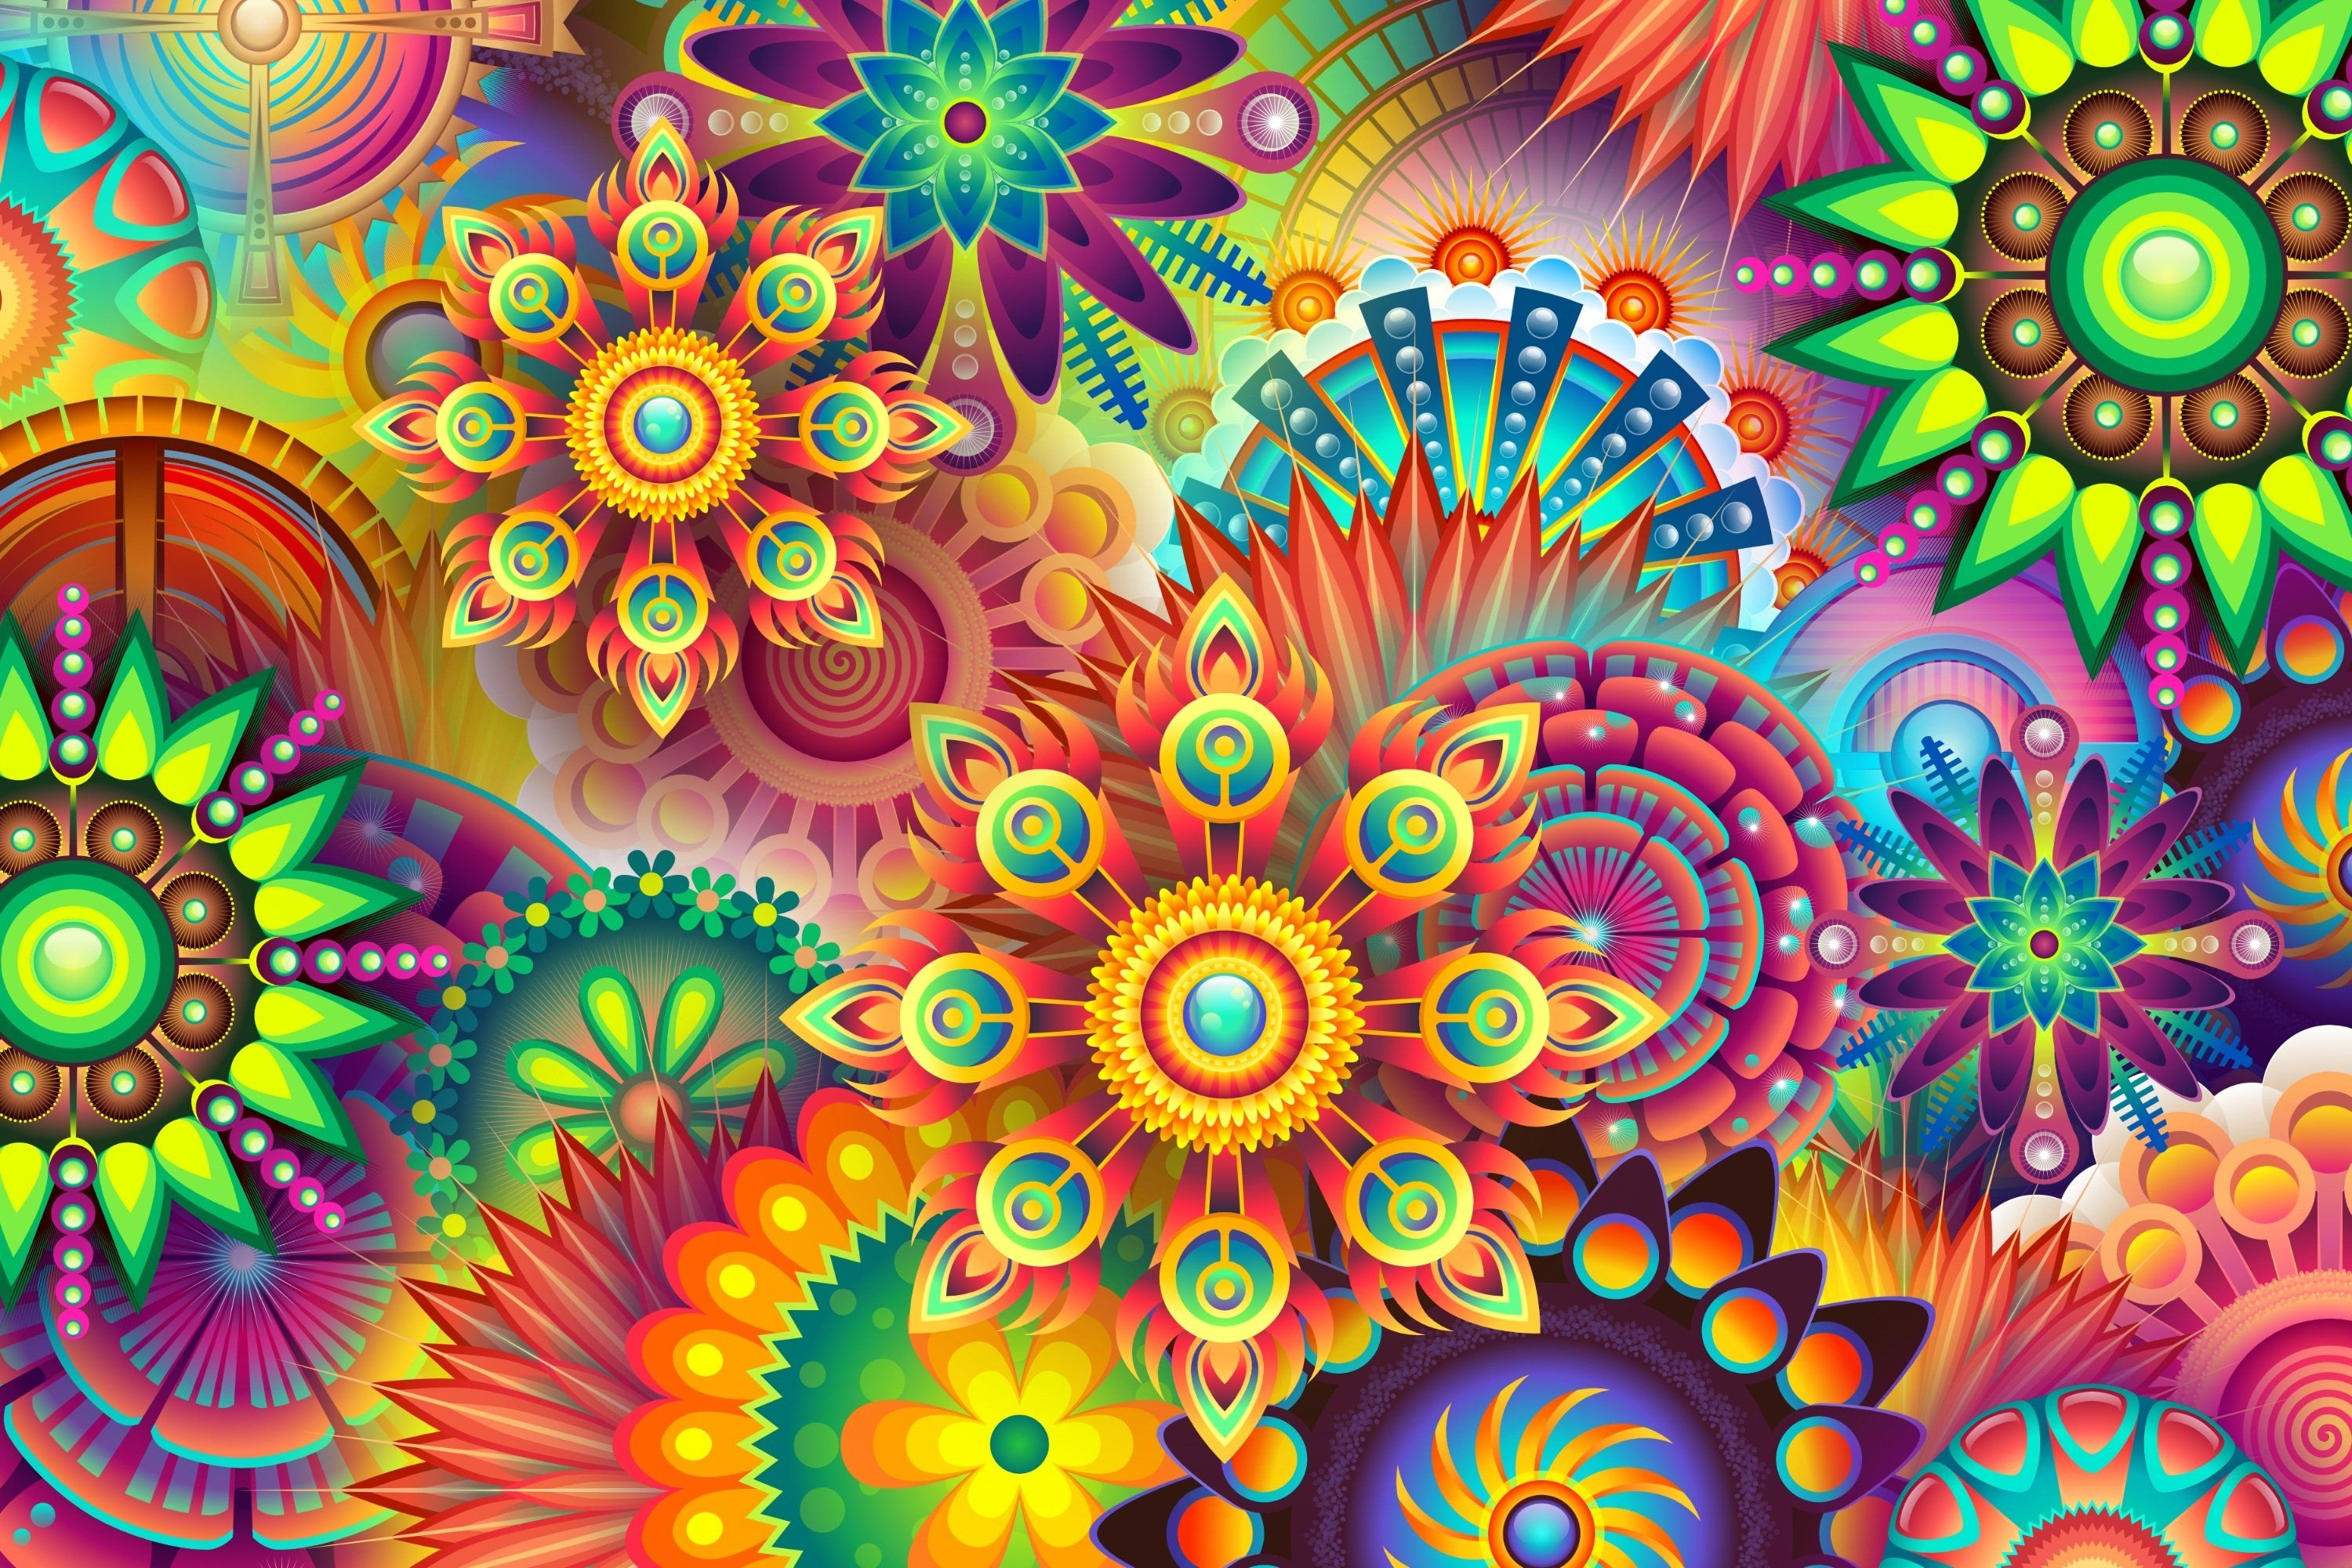 Colorful 3000x2000 Psychedelic Abstract Wallpaper